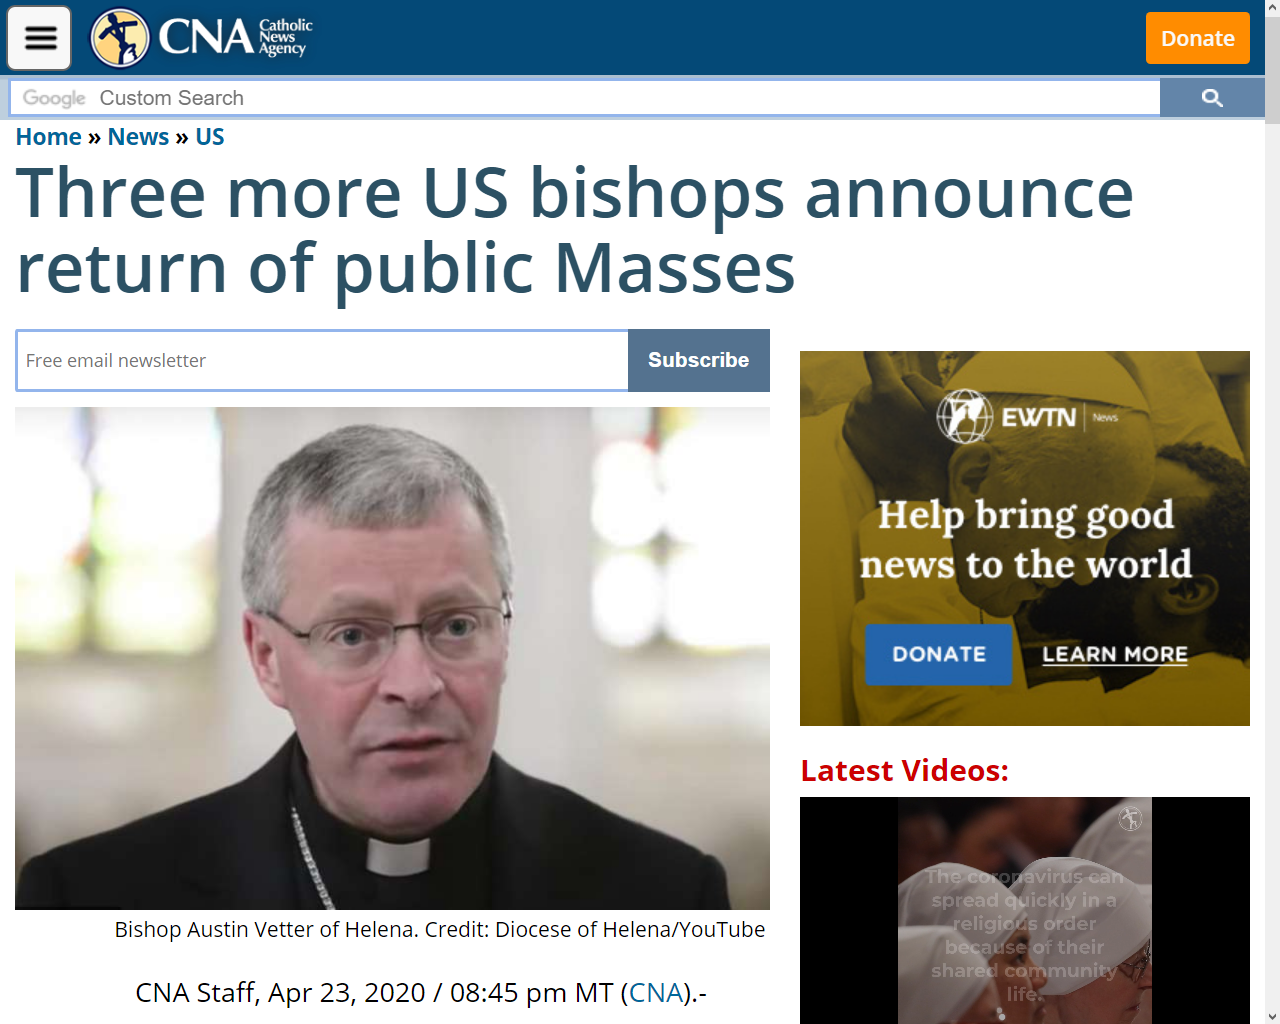 https://www.catholicnewsagency.com/news/three-more-us-bishops-announce-return-of-public-masses-46313